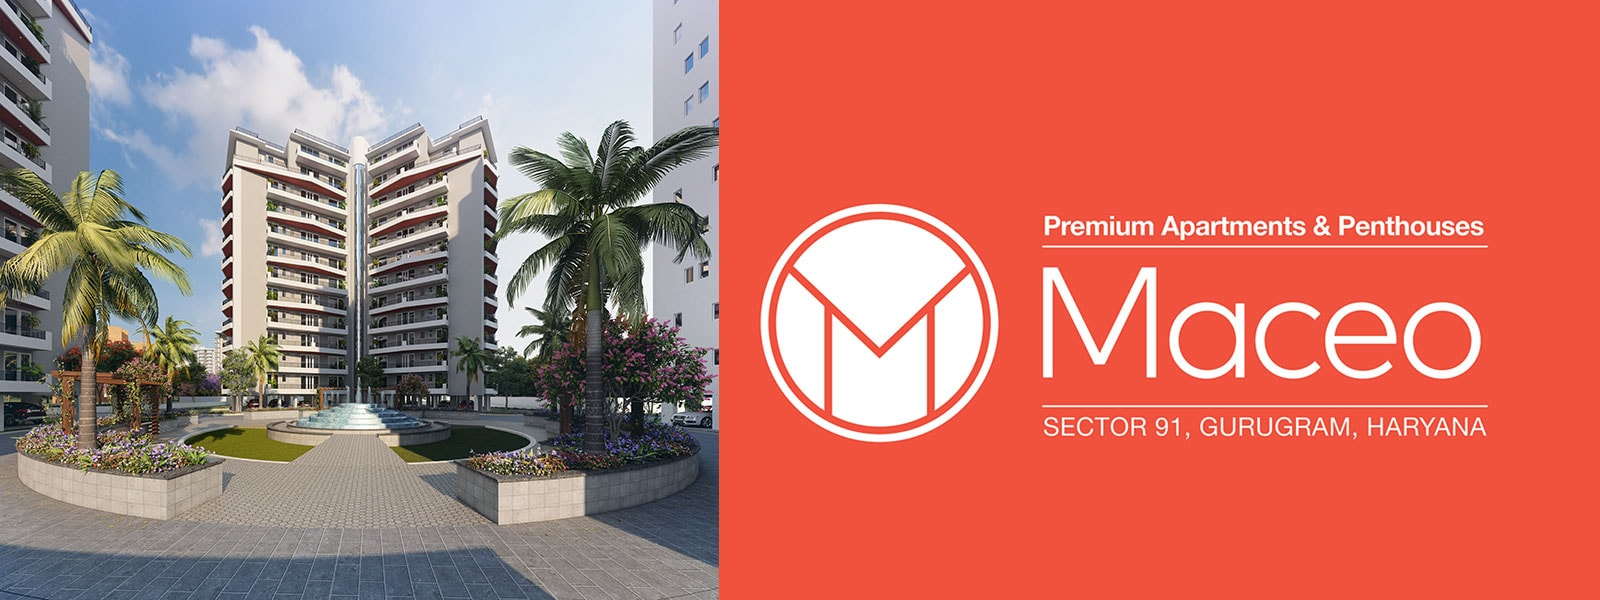 AnantRaj Maceo Residential Flats sector 91 gurgaon